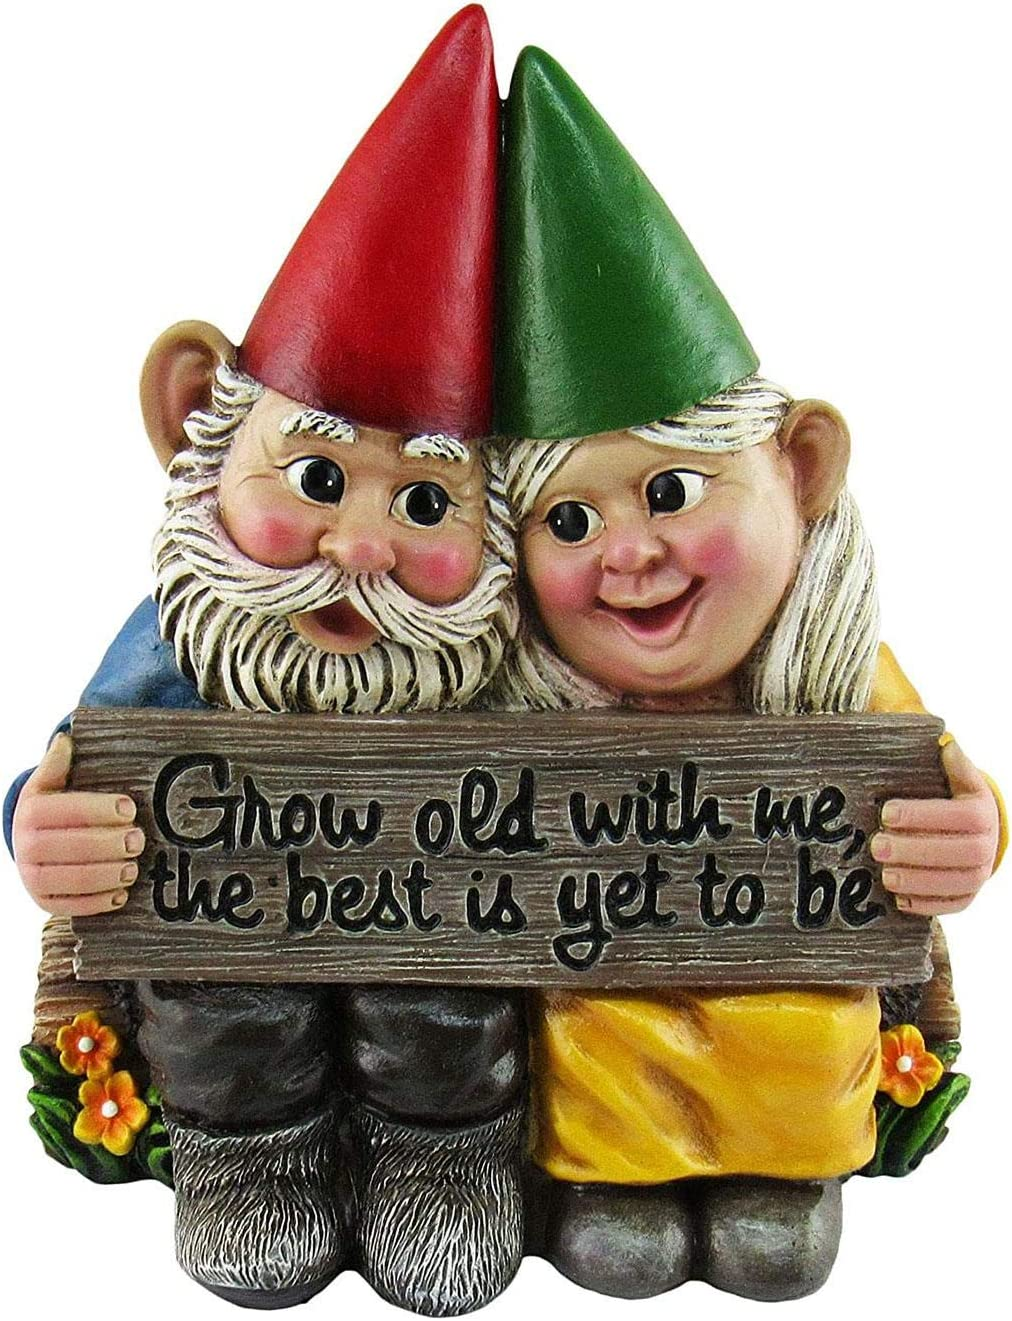 Growing Old Together -Garden Gnome Couple in Love, Garden Statue Wedding Gnomes, Collectible Figurine Friend Lover Romantic Statue, Indoor Outdoor Home Décor Wedding Gift